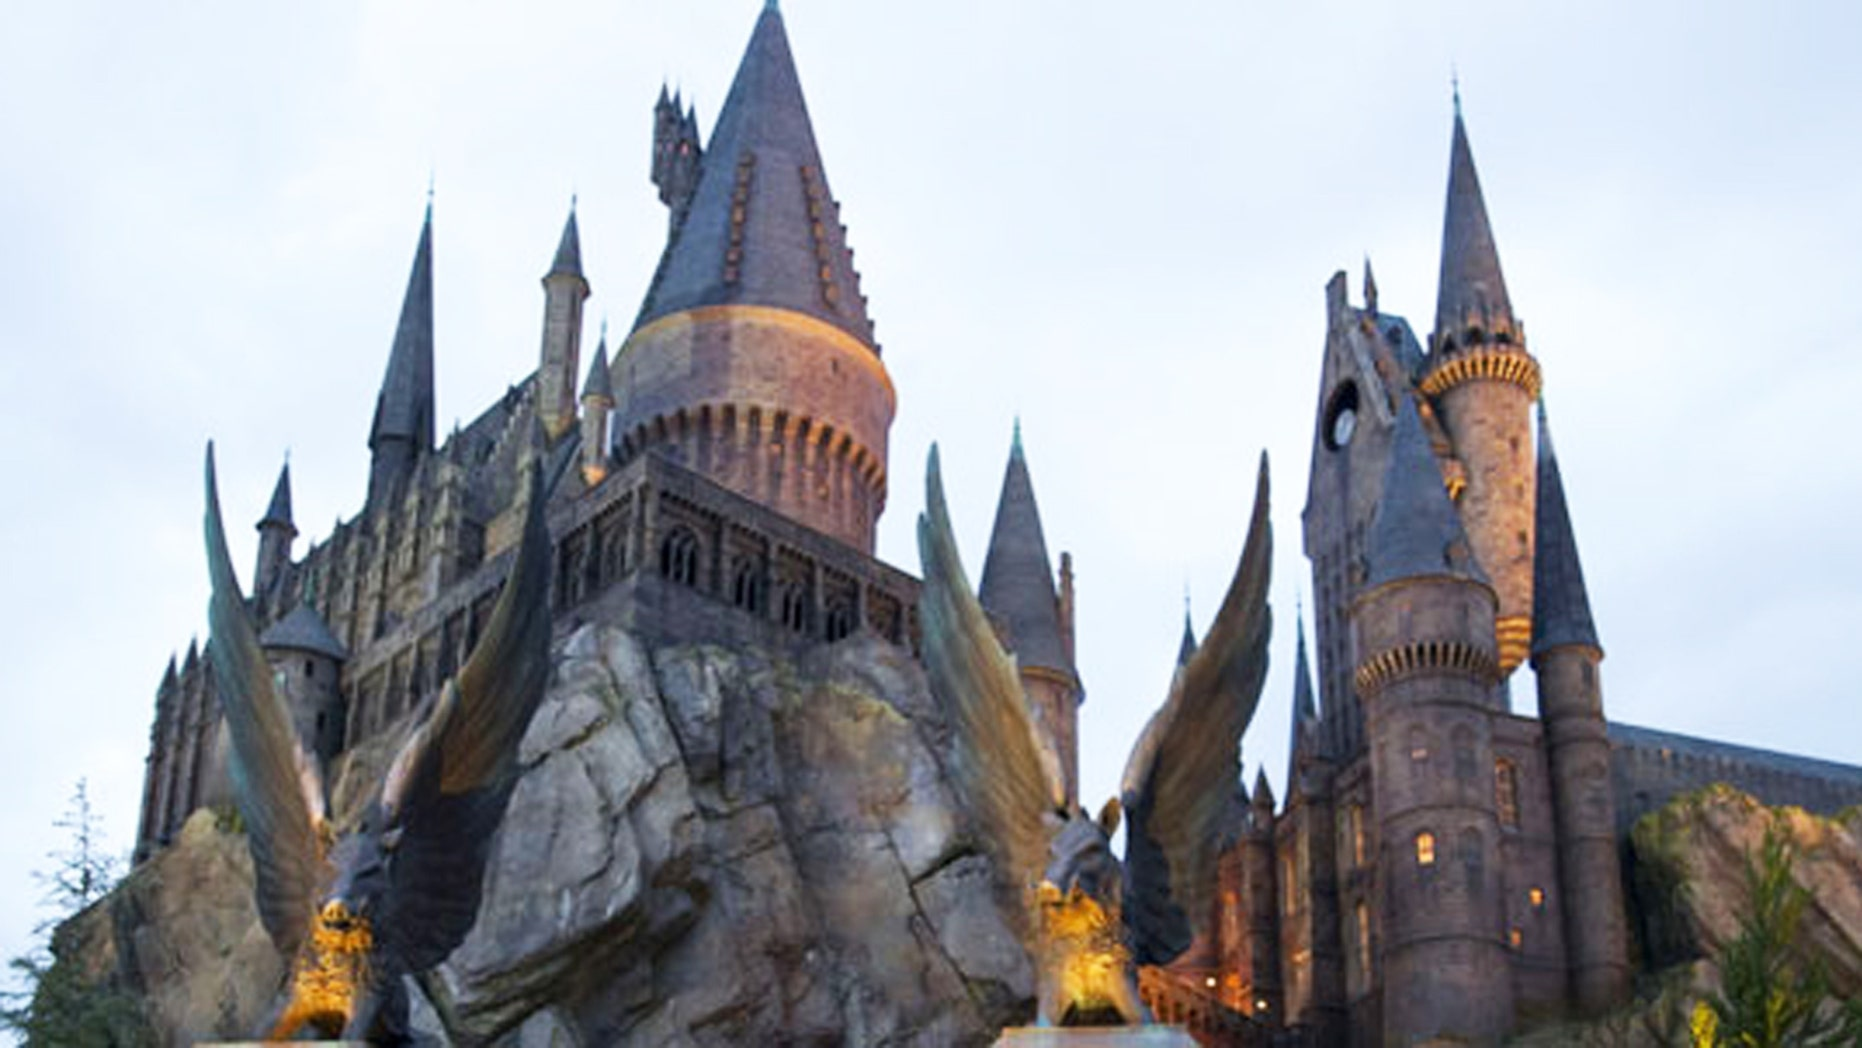 Hogwarts Castle beckons guests at the entrance to Harry Potter and the Forbidden Journey attraction.